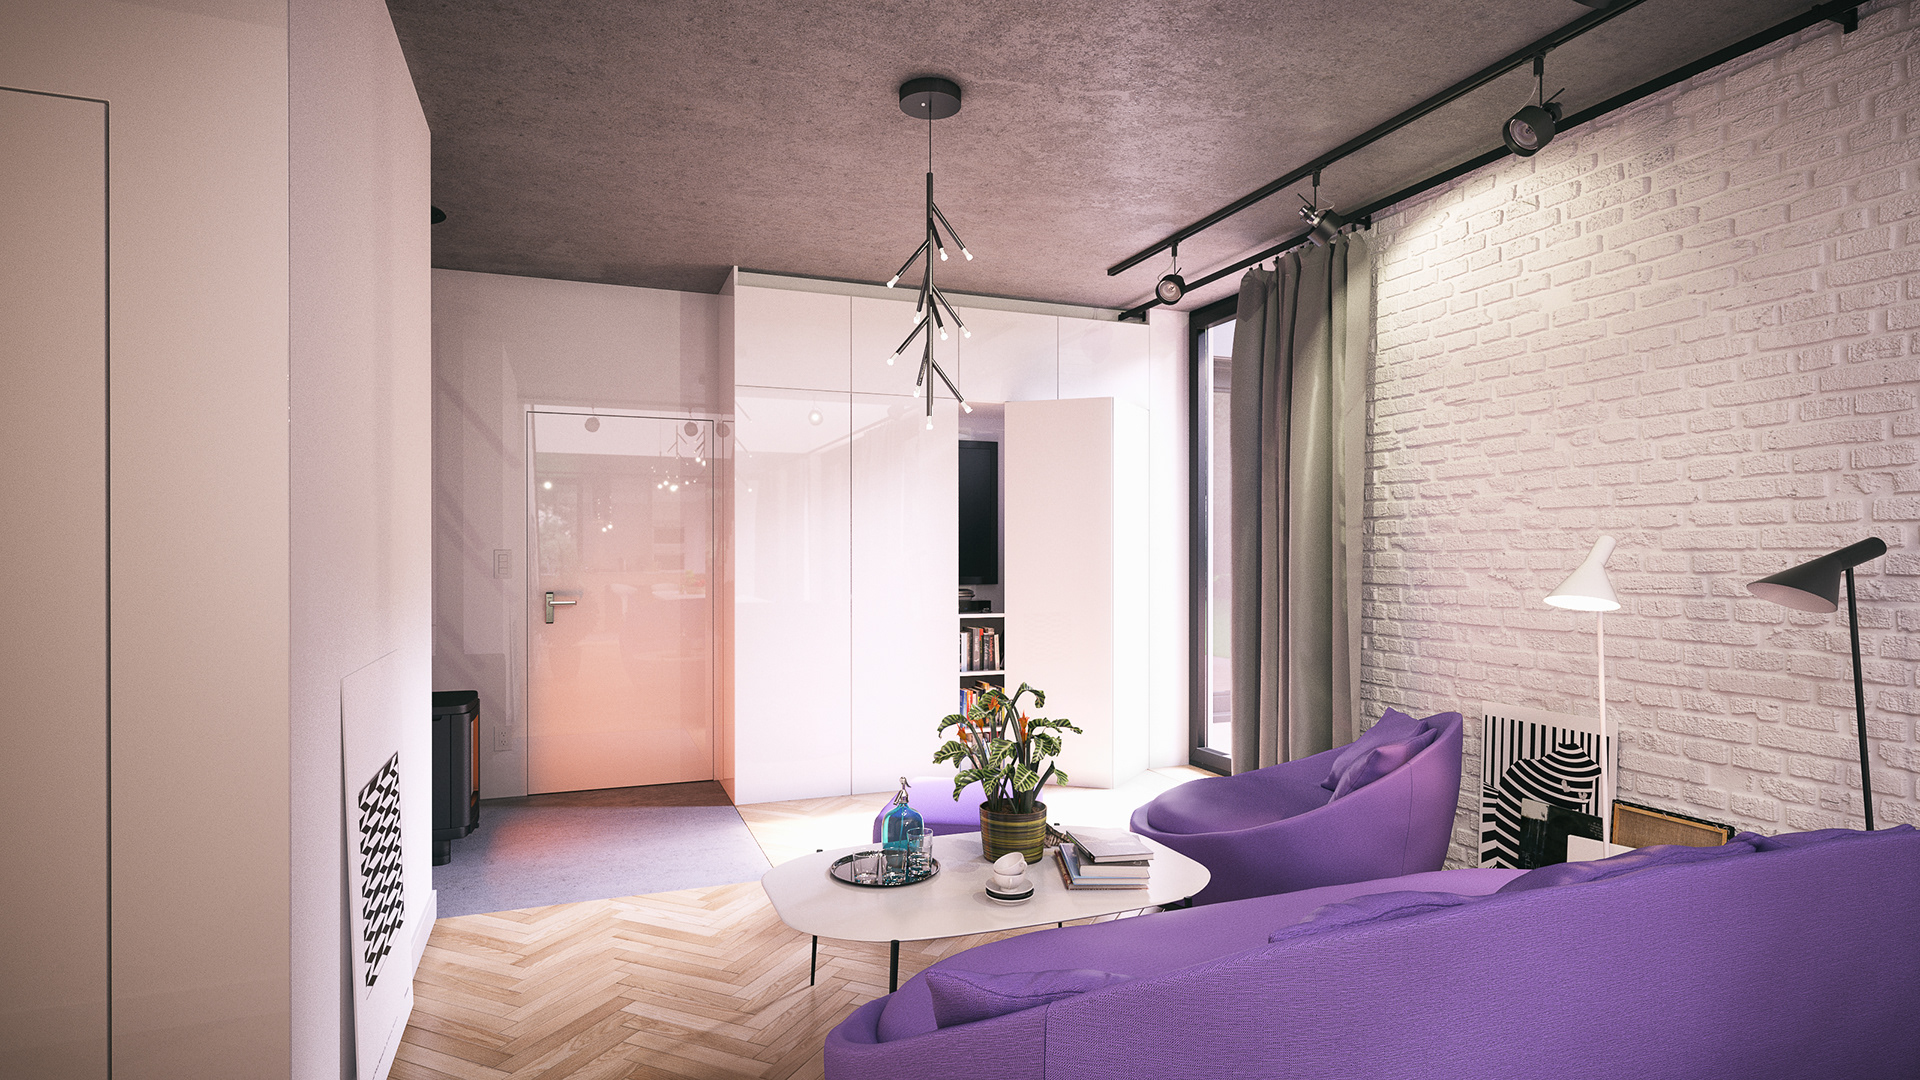 commercial project premium house interior design indea modeled 3dsmax 2015 textured 3dsmax 2015 rendered vray 32003 postproduction ps cc - Purple House Interior